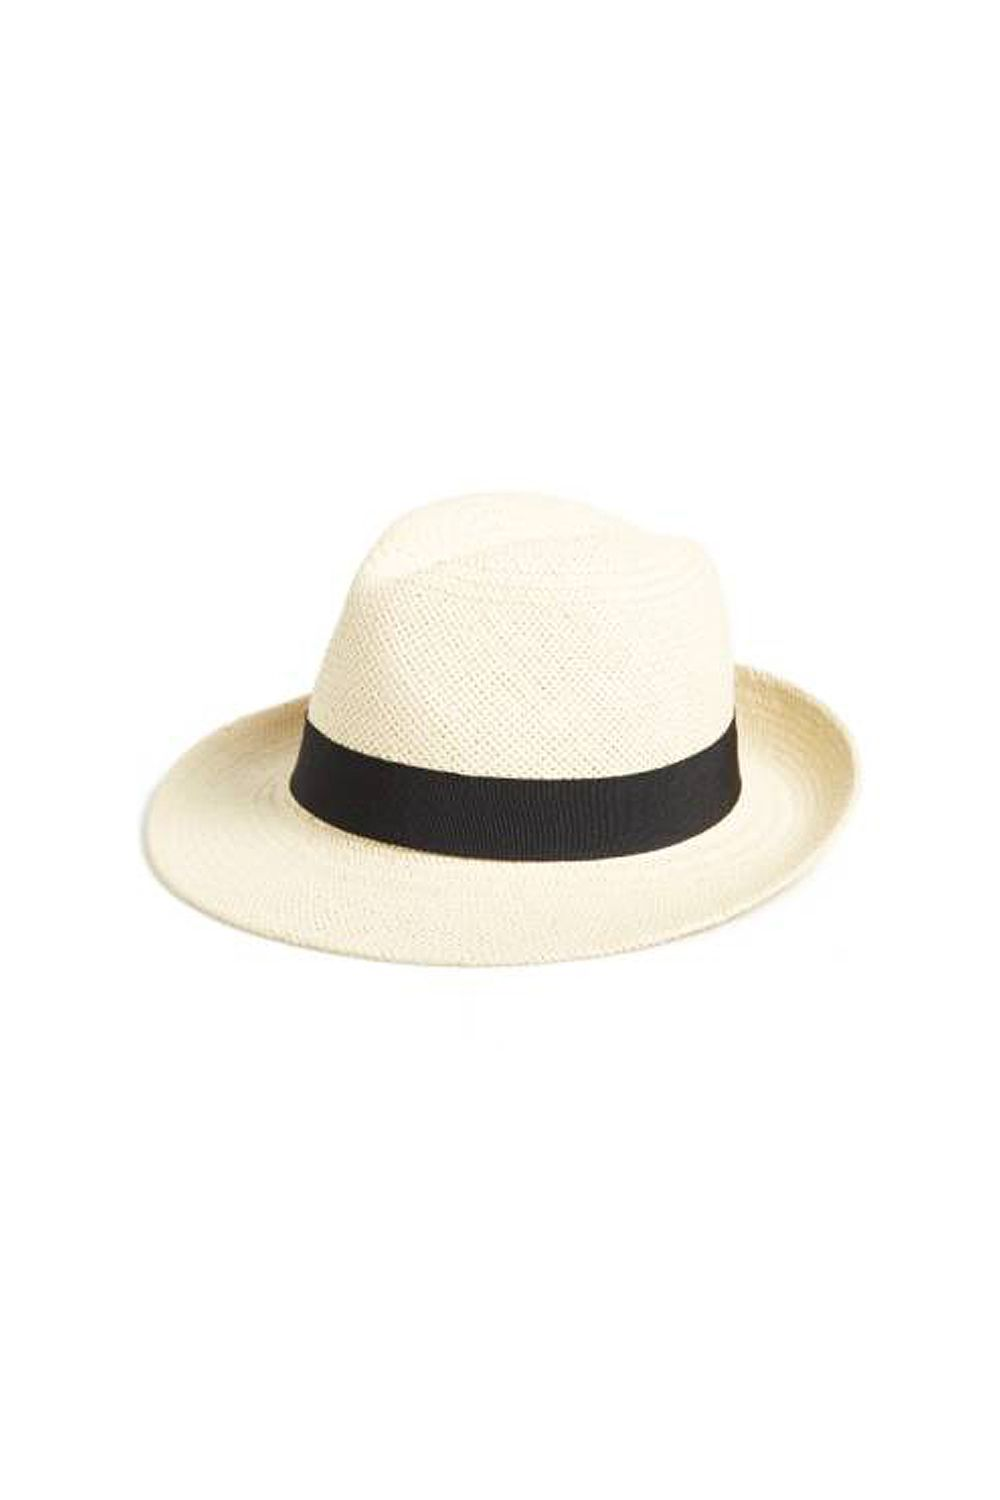 Hats for Summer